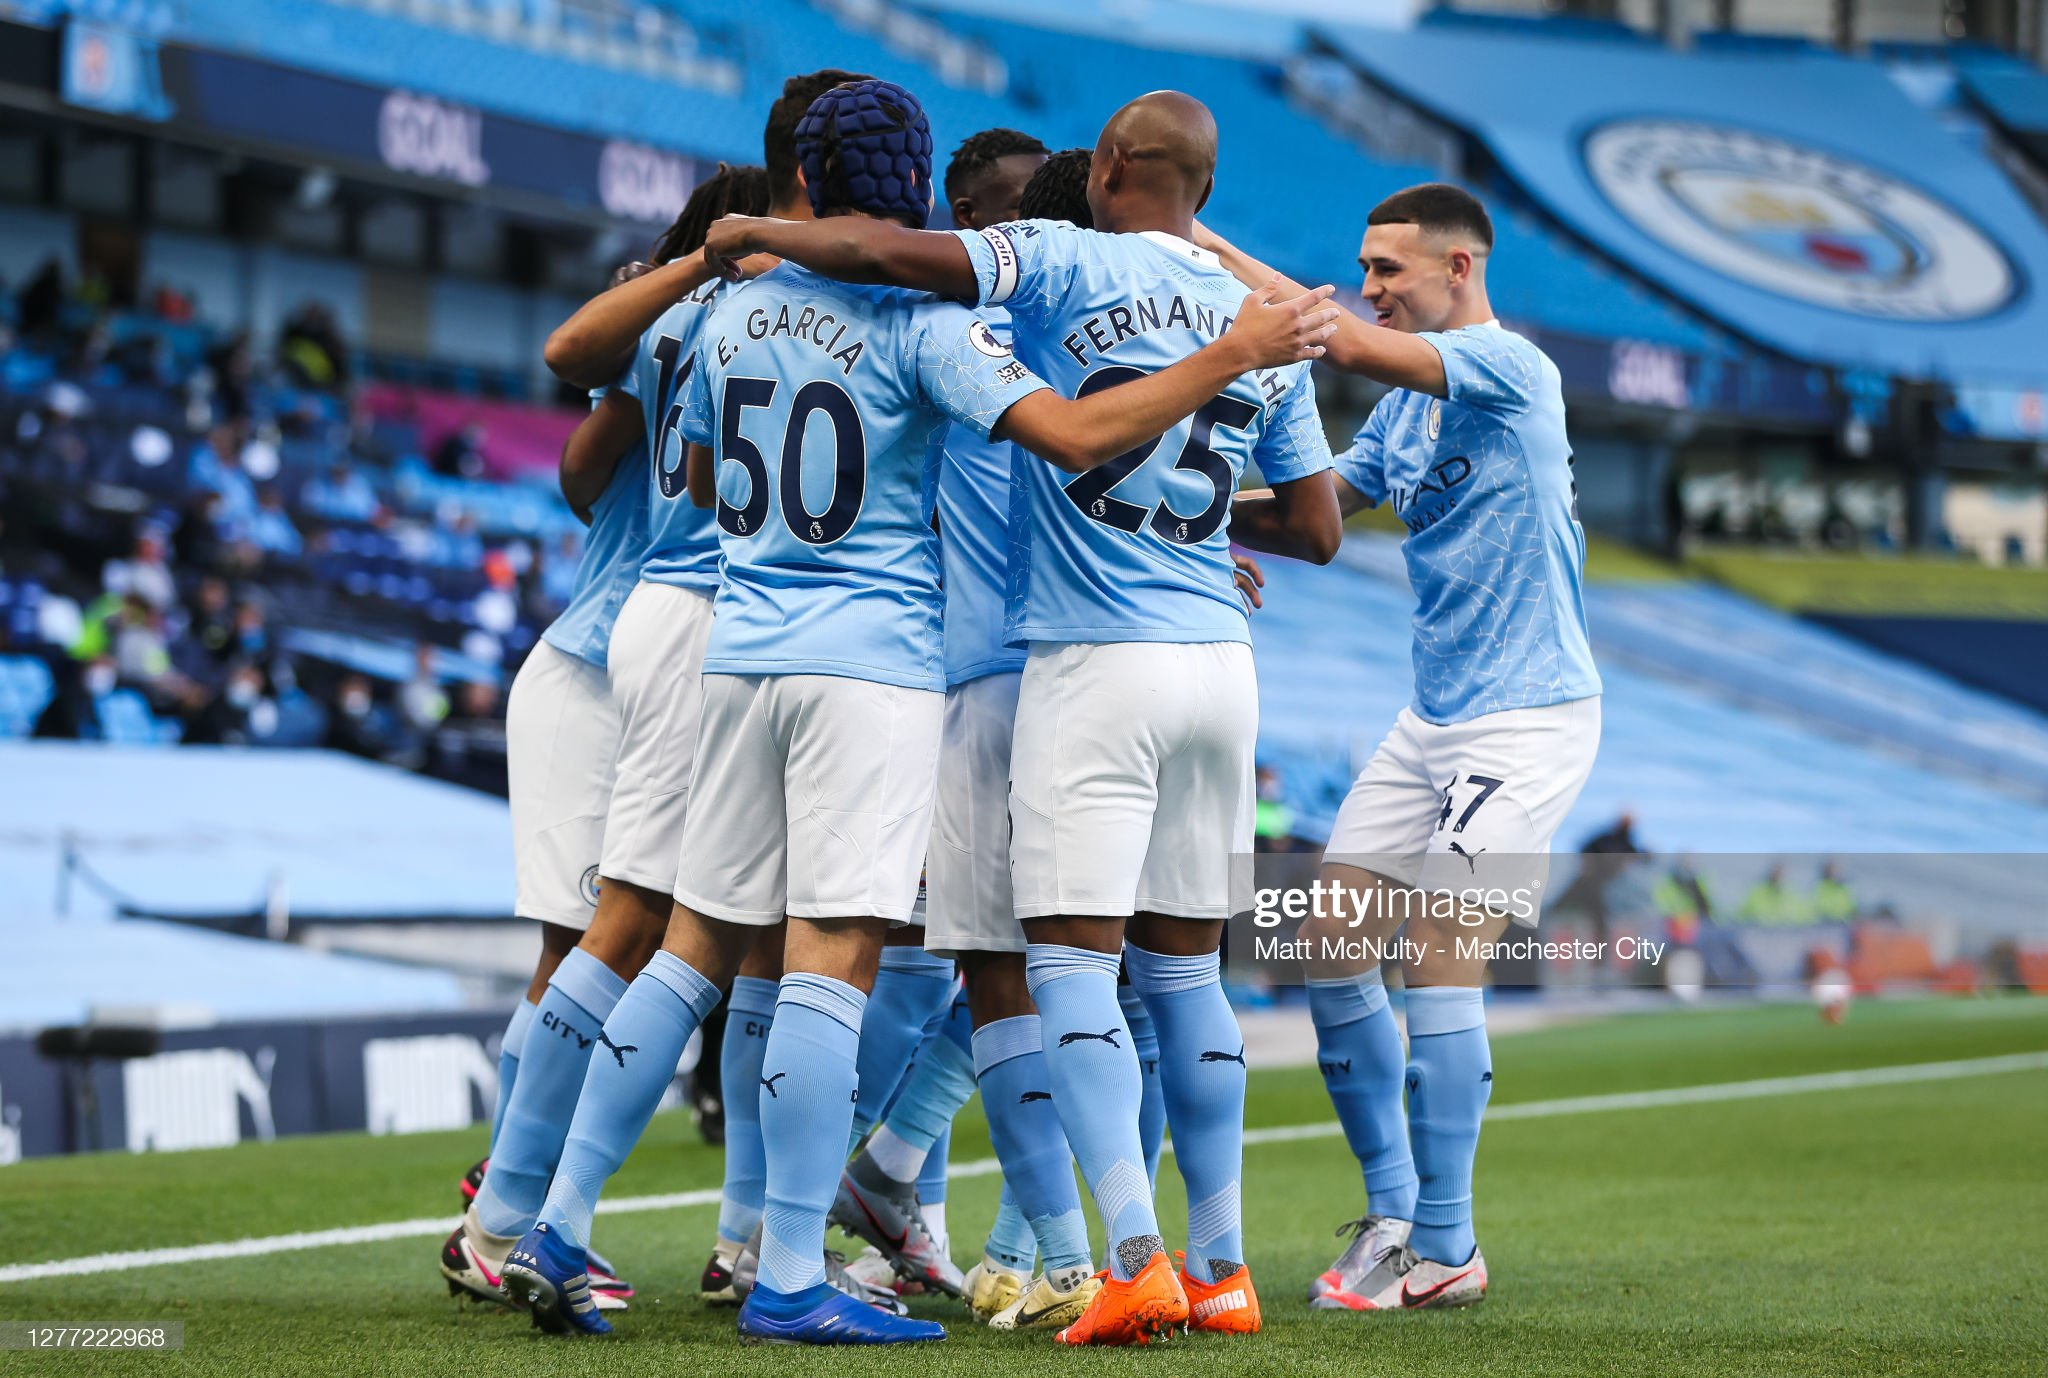 ¿Cuánto mide Eric Garcia? - Altura real: 1,79 - Real height Riyad-mahrez-of-manchester-city-celebrates-with-teammates-after-his-picture-id1277222968?s=2048x2048